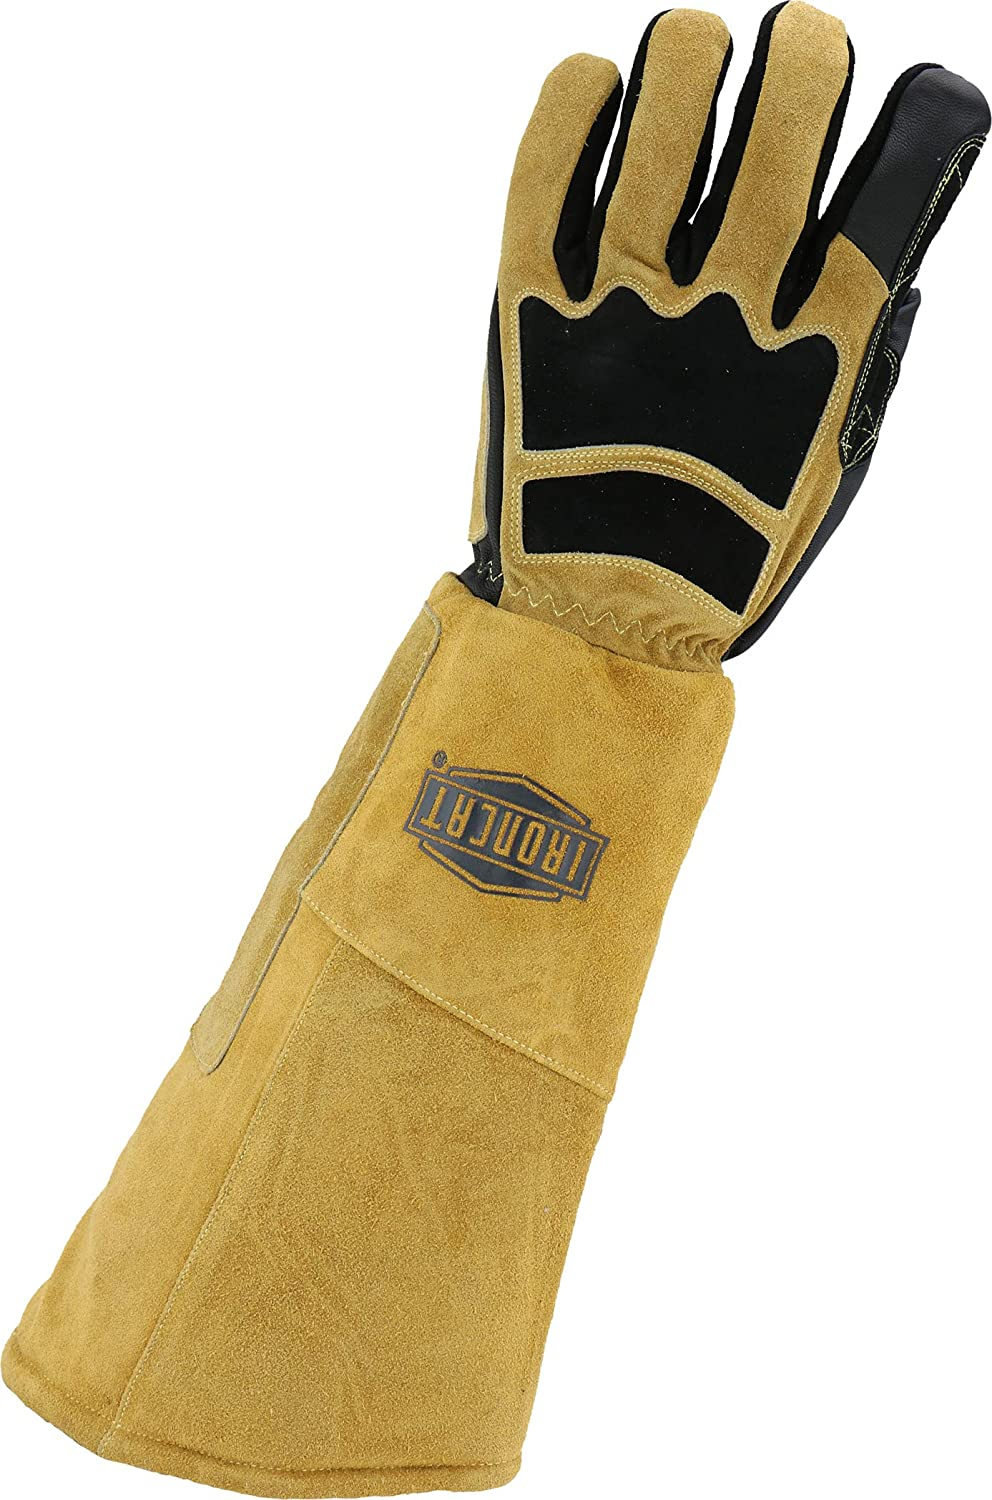 Left Hand Only 9070LHO//L West Chester IRONCAT 9070 Premium Grain Goatskin and Split Cowhide Leather Stick Welding Glove Large